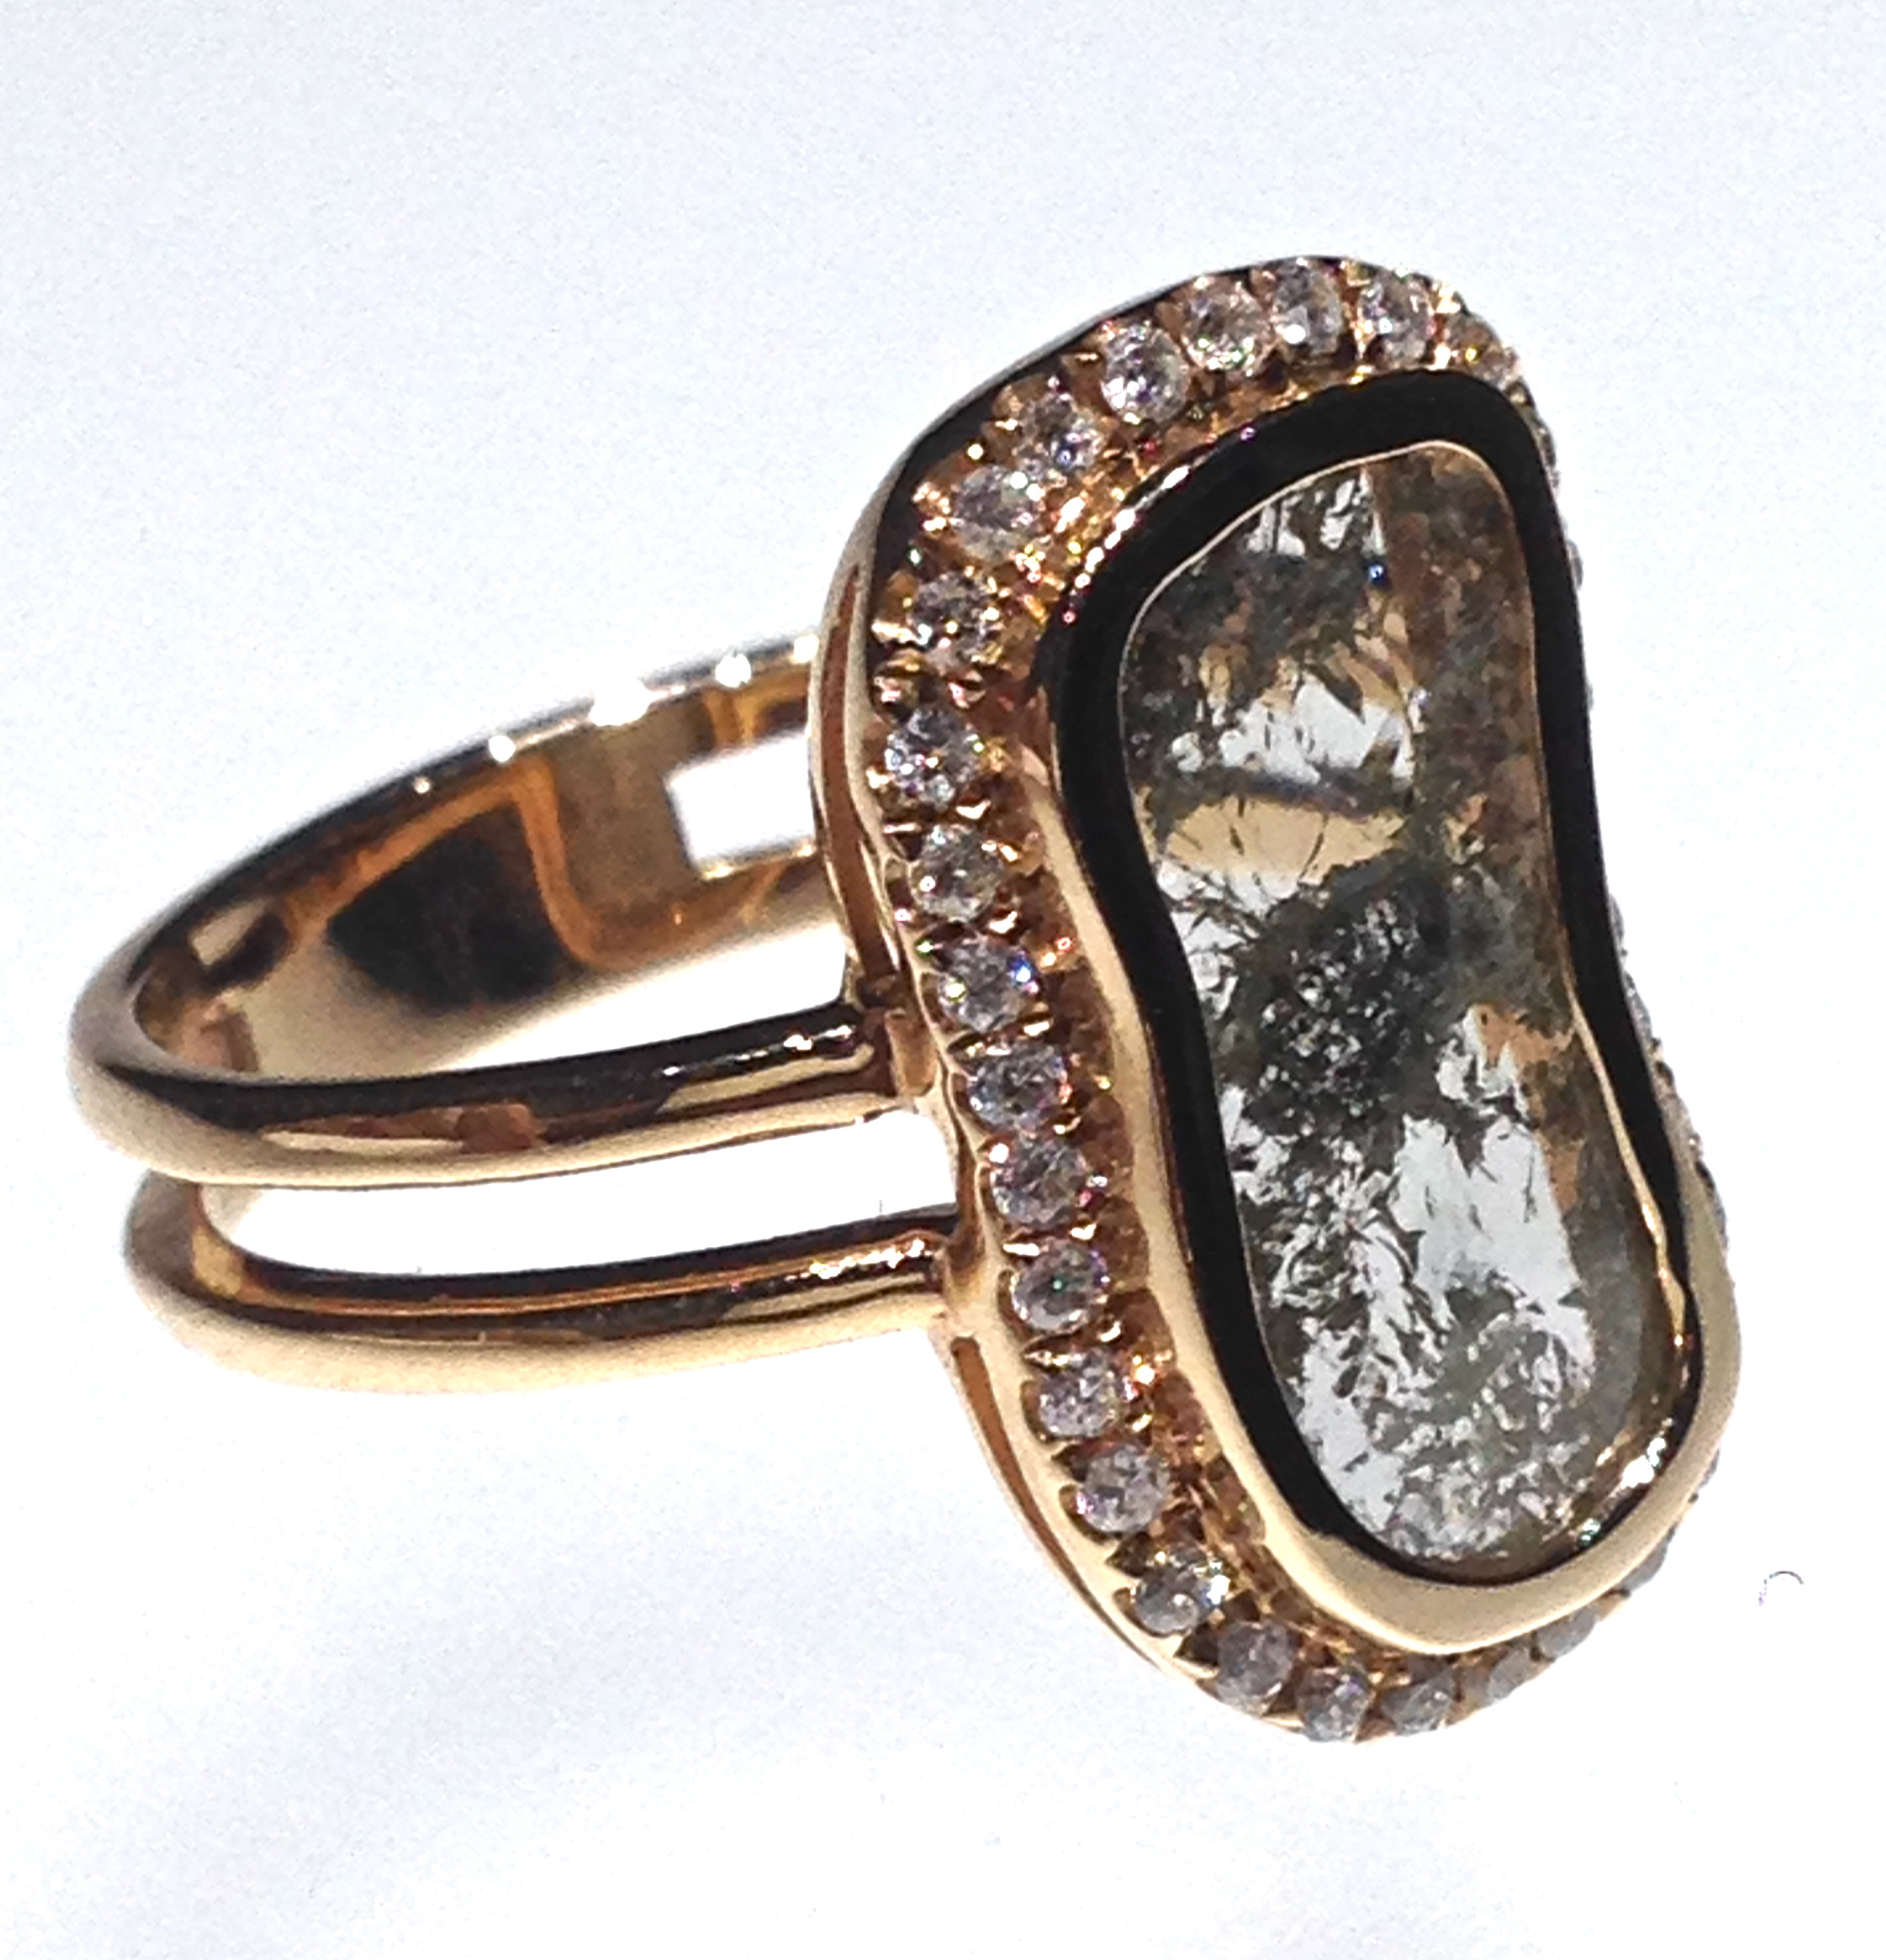 side-view-unique-ladies-gold-diamond-slice-raw-diamond-engagement-ring-craft-revival-jewelry-store-grand-rapids